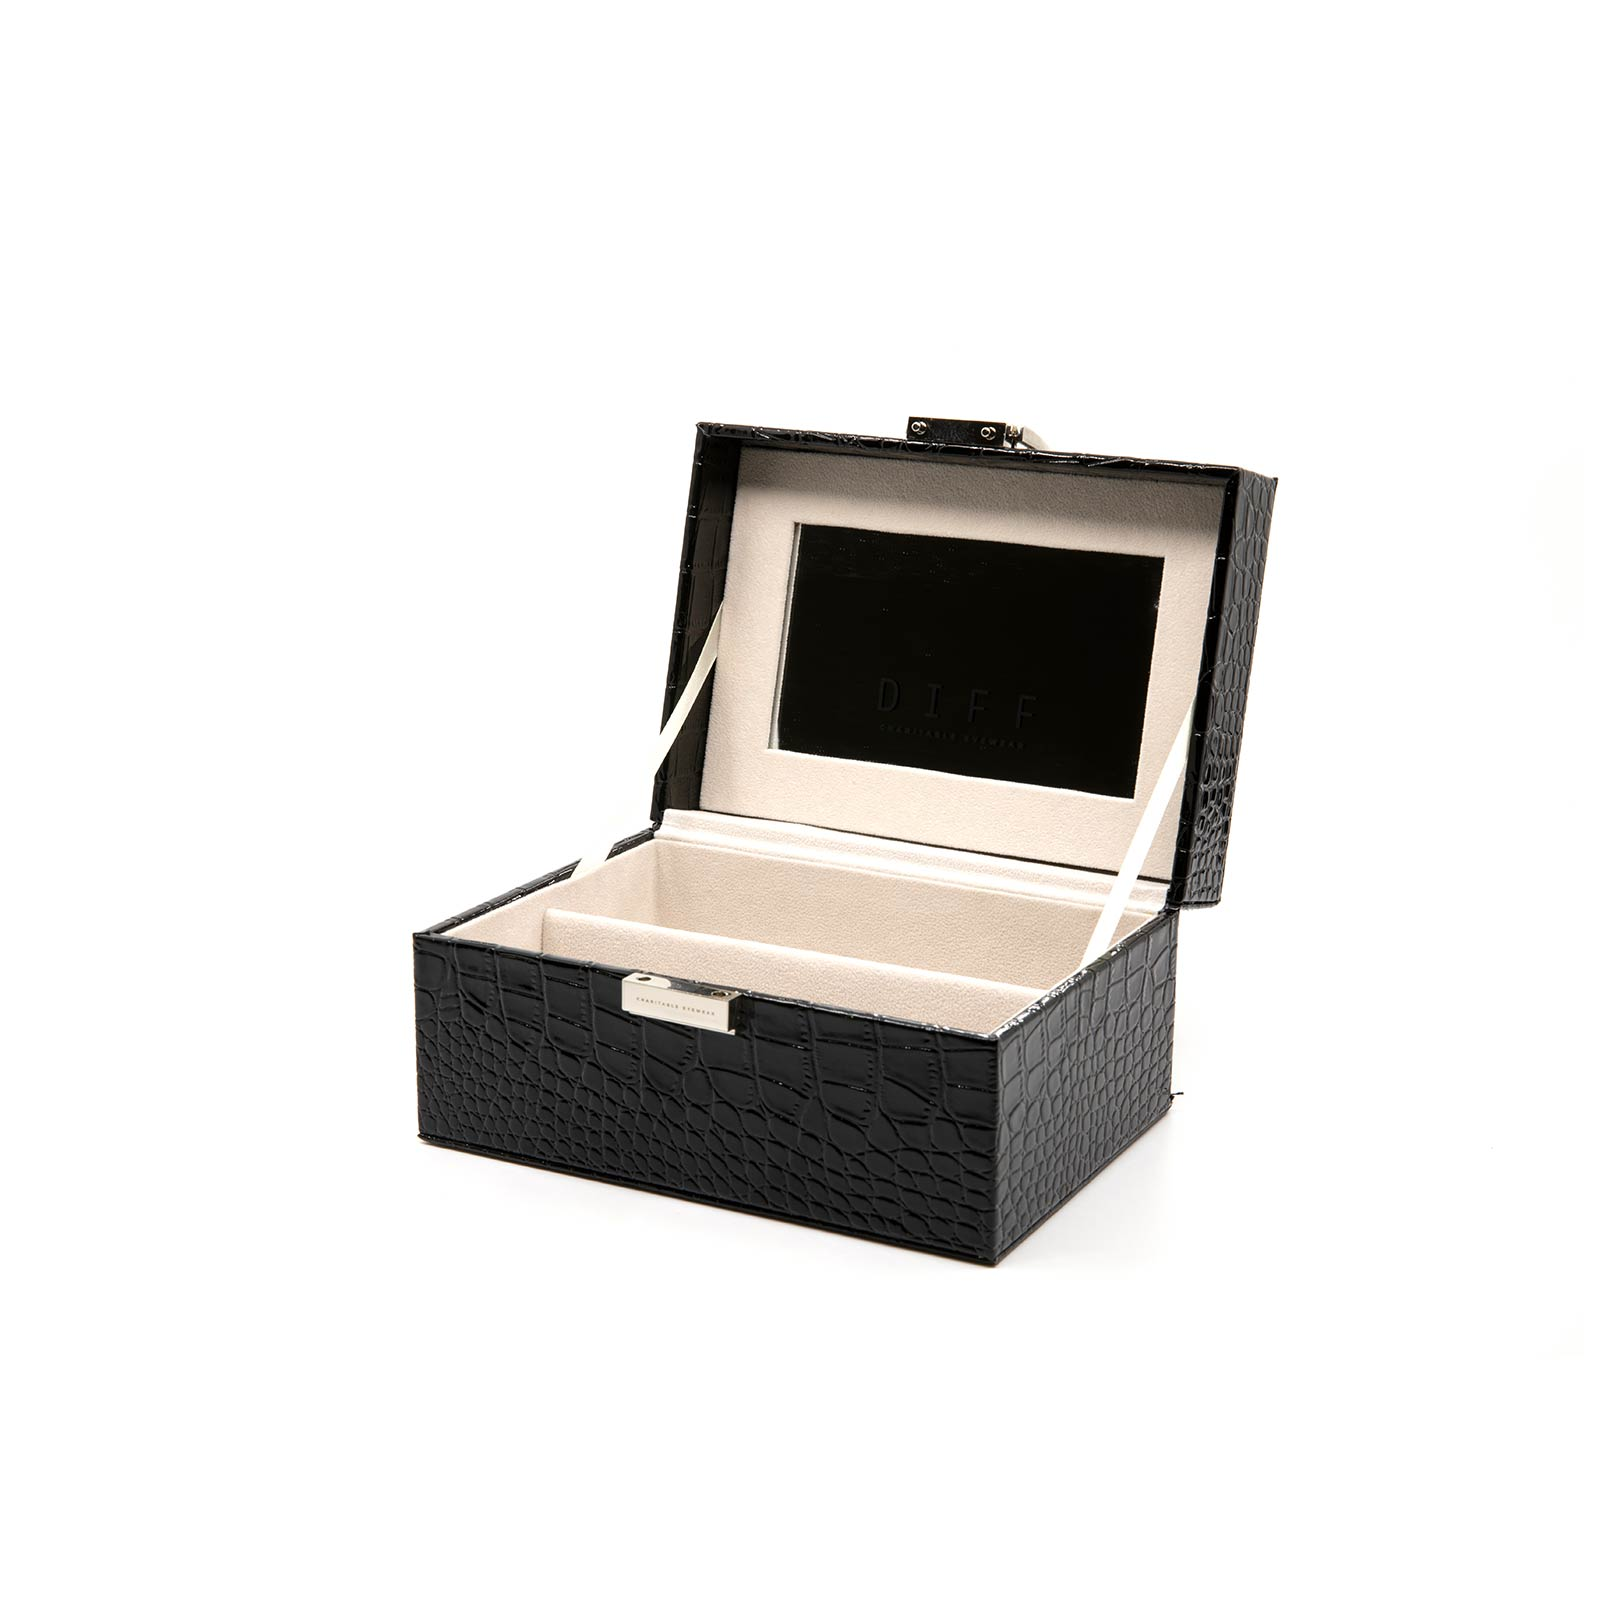 2 PIECE VANITY CASE - BLACK CROC